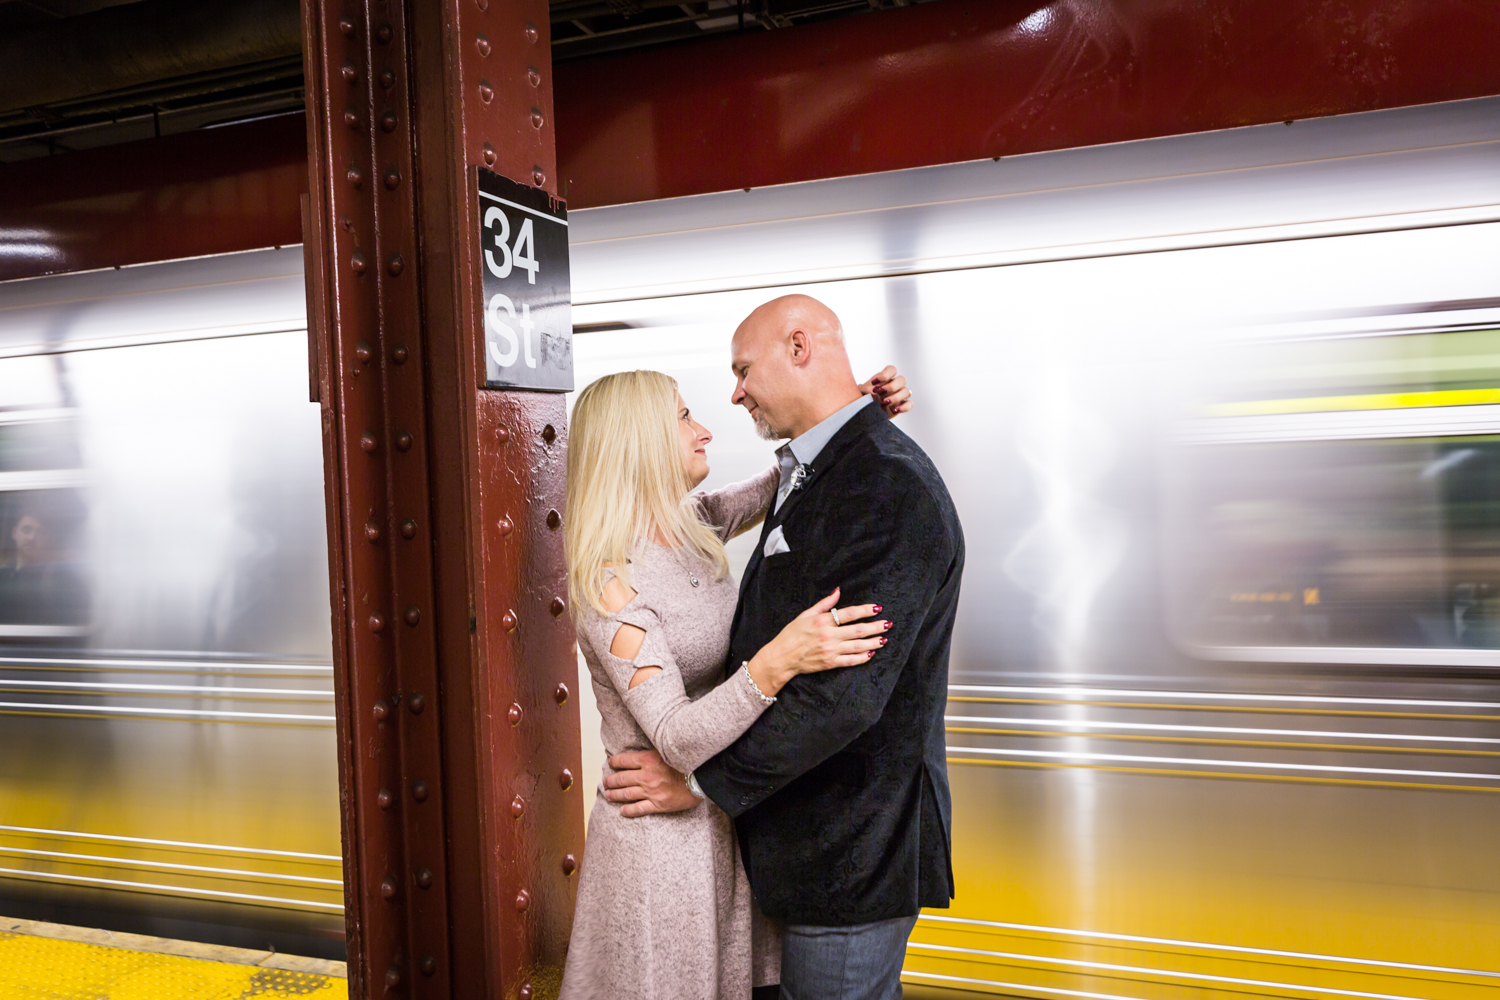 Couple hugging on platform while subway train is speeding past